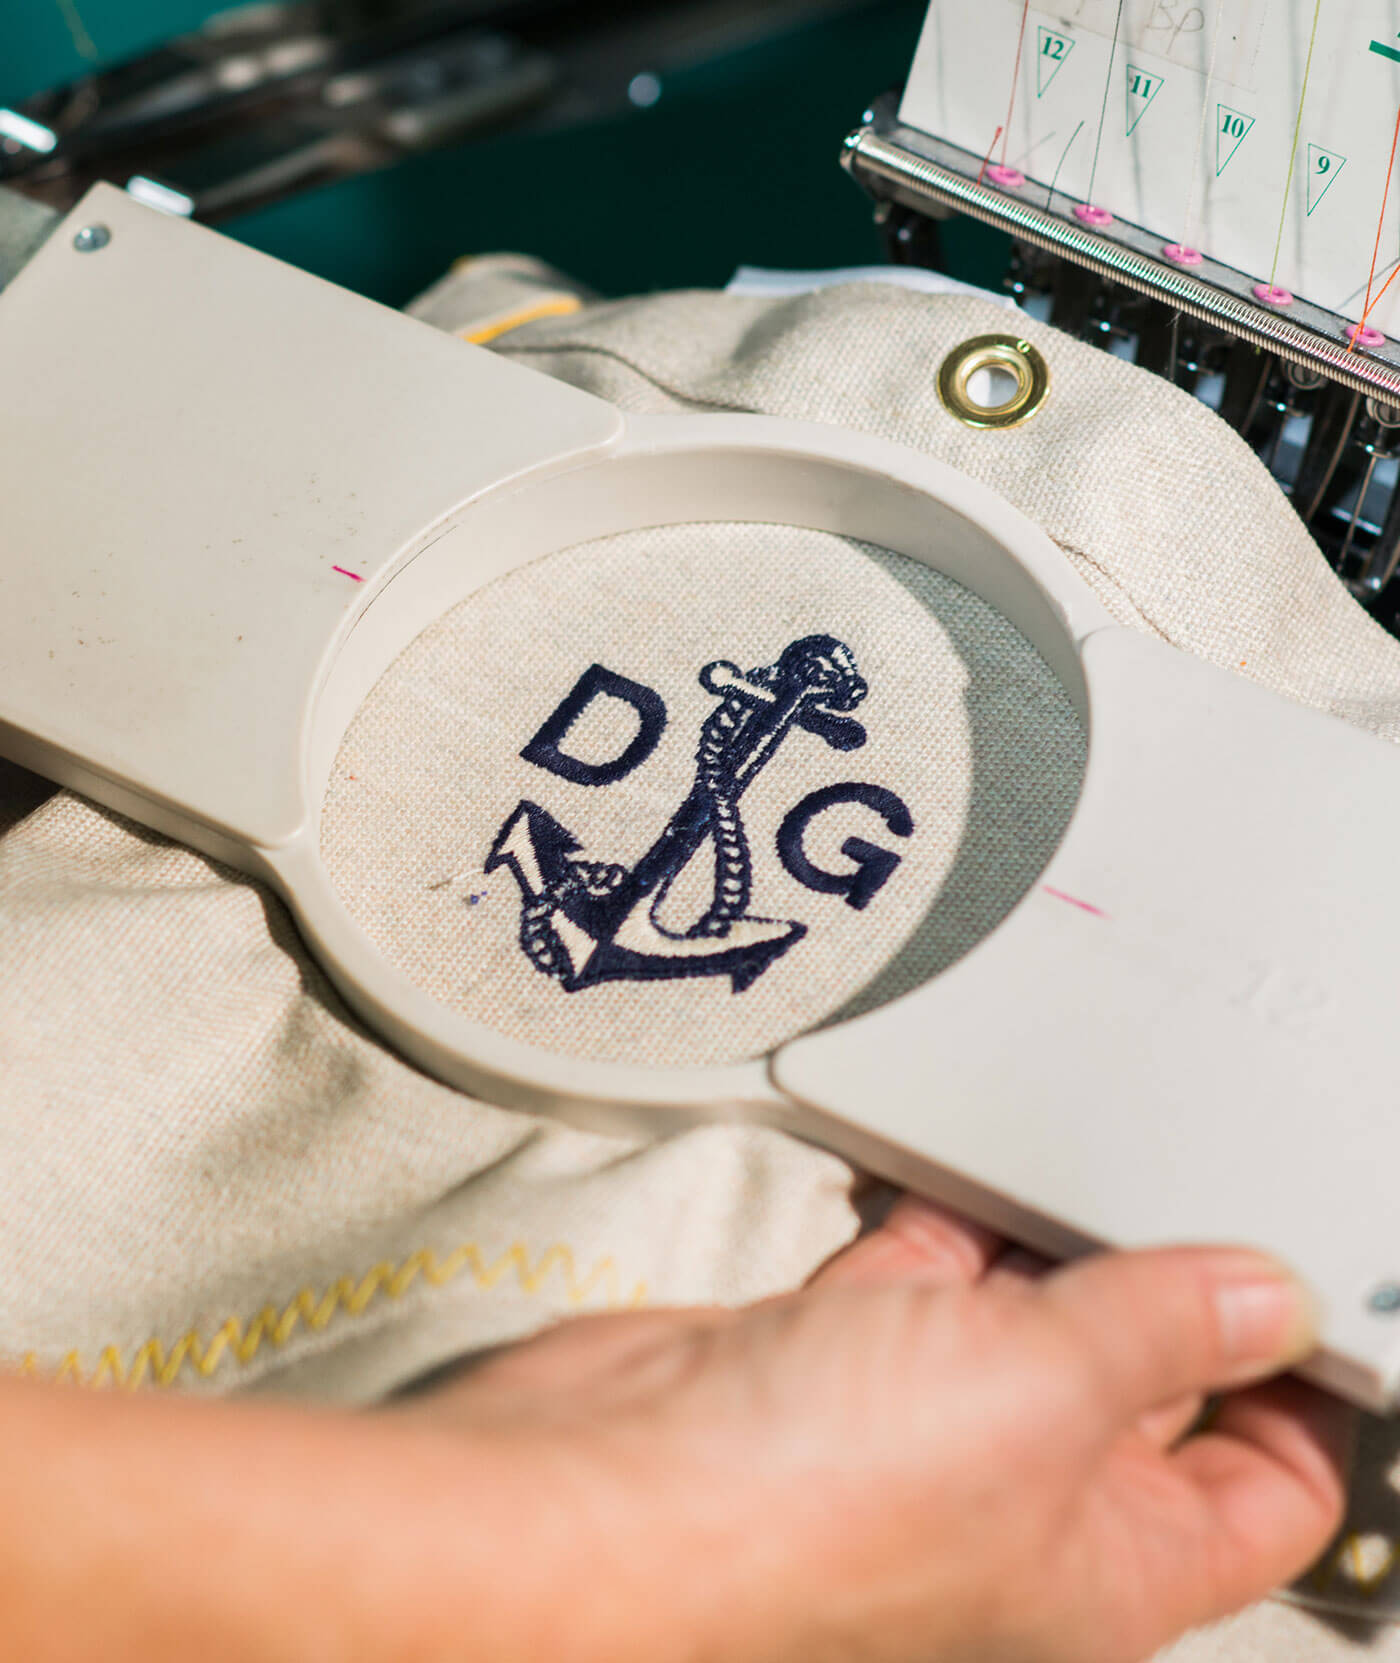 Initials being embroidered onto a canvas bag